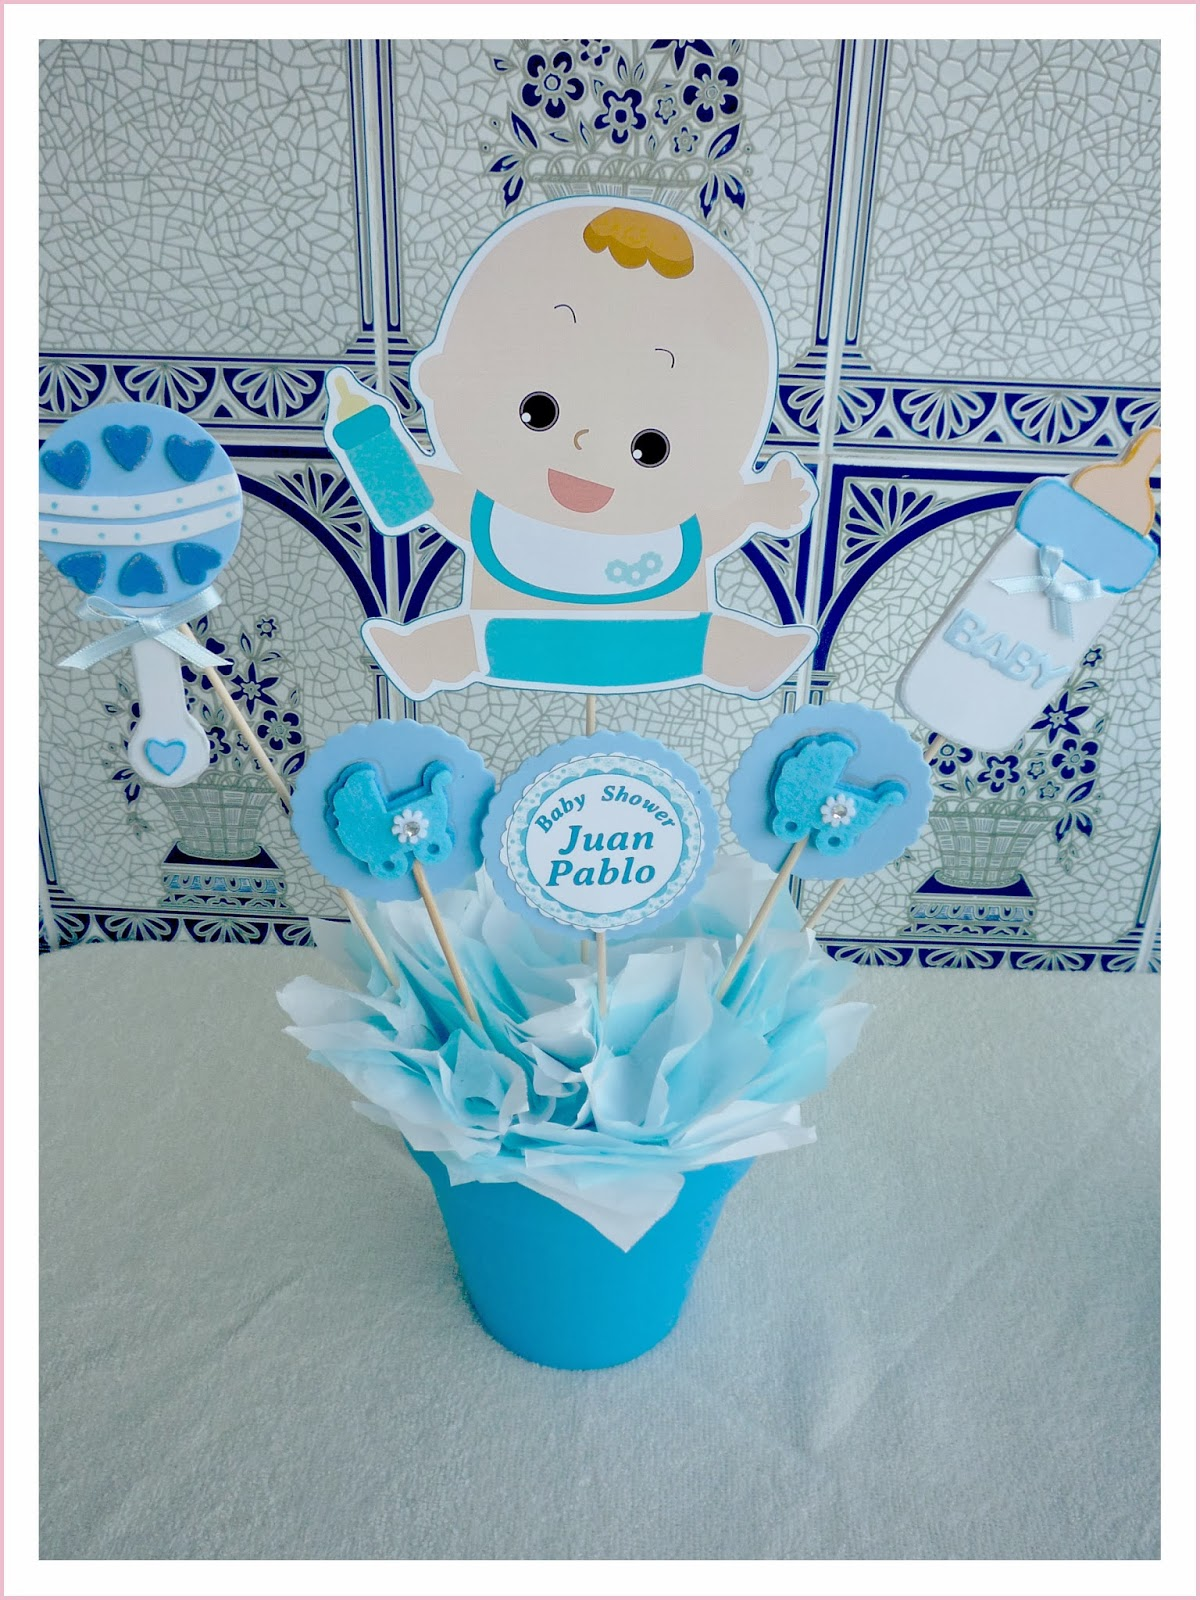 Baby nina fiestas baby shower para juan pablo for Centro de mesa baby shower